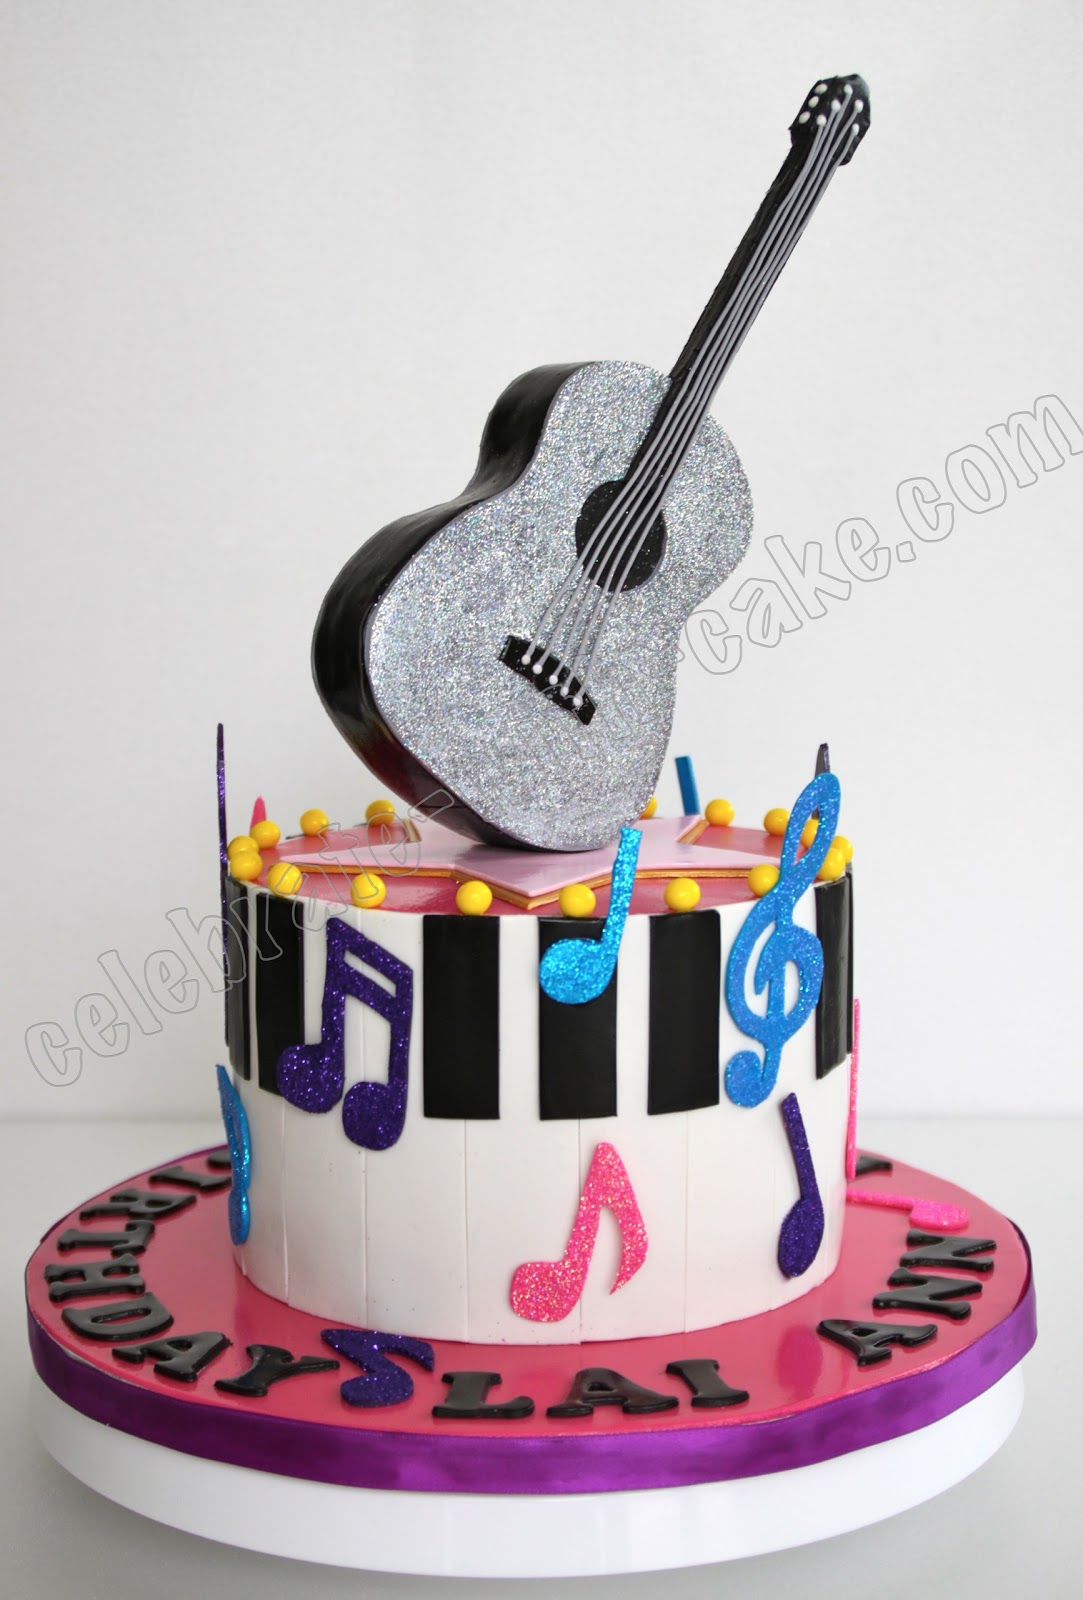 Celebrate With Cake Taylor Swifts Glittery Guitar And Piano Cake